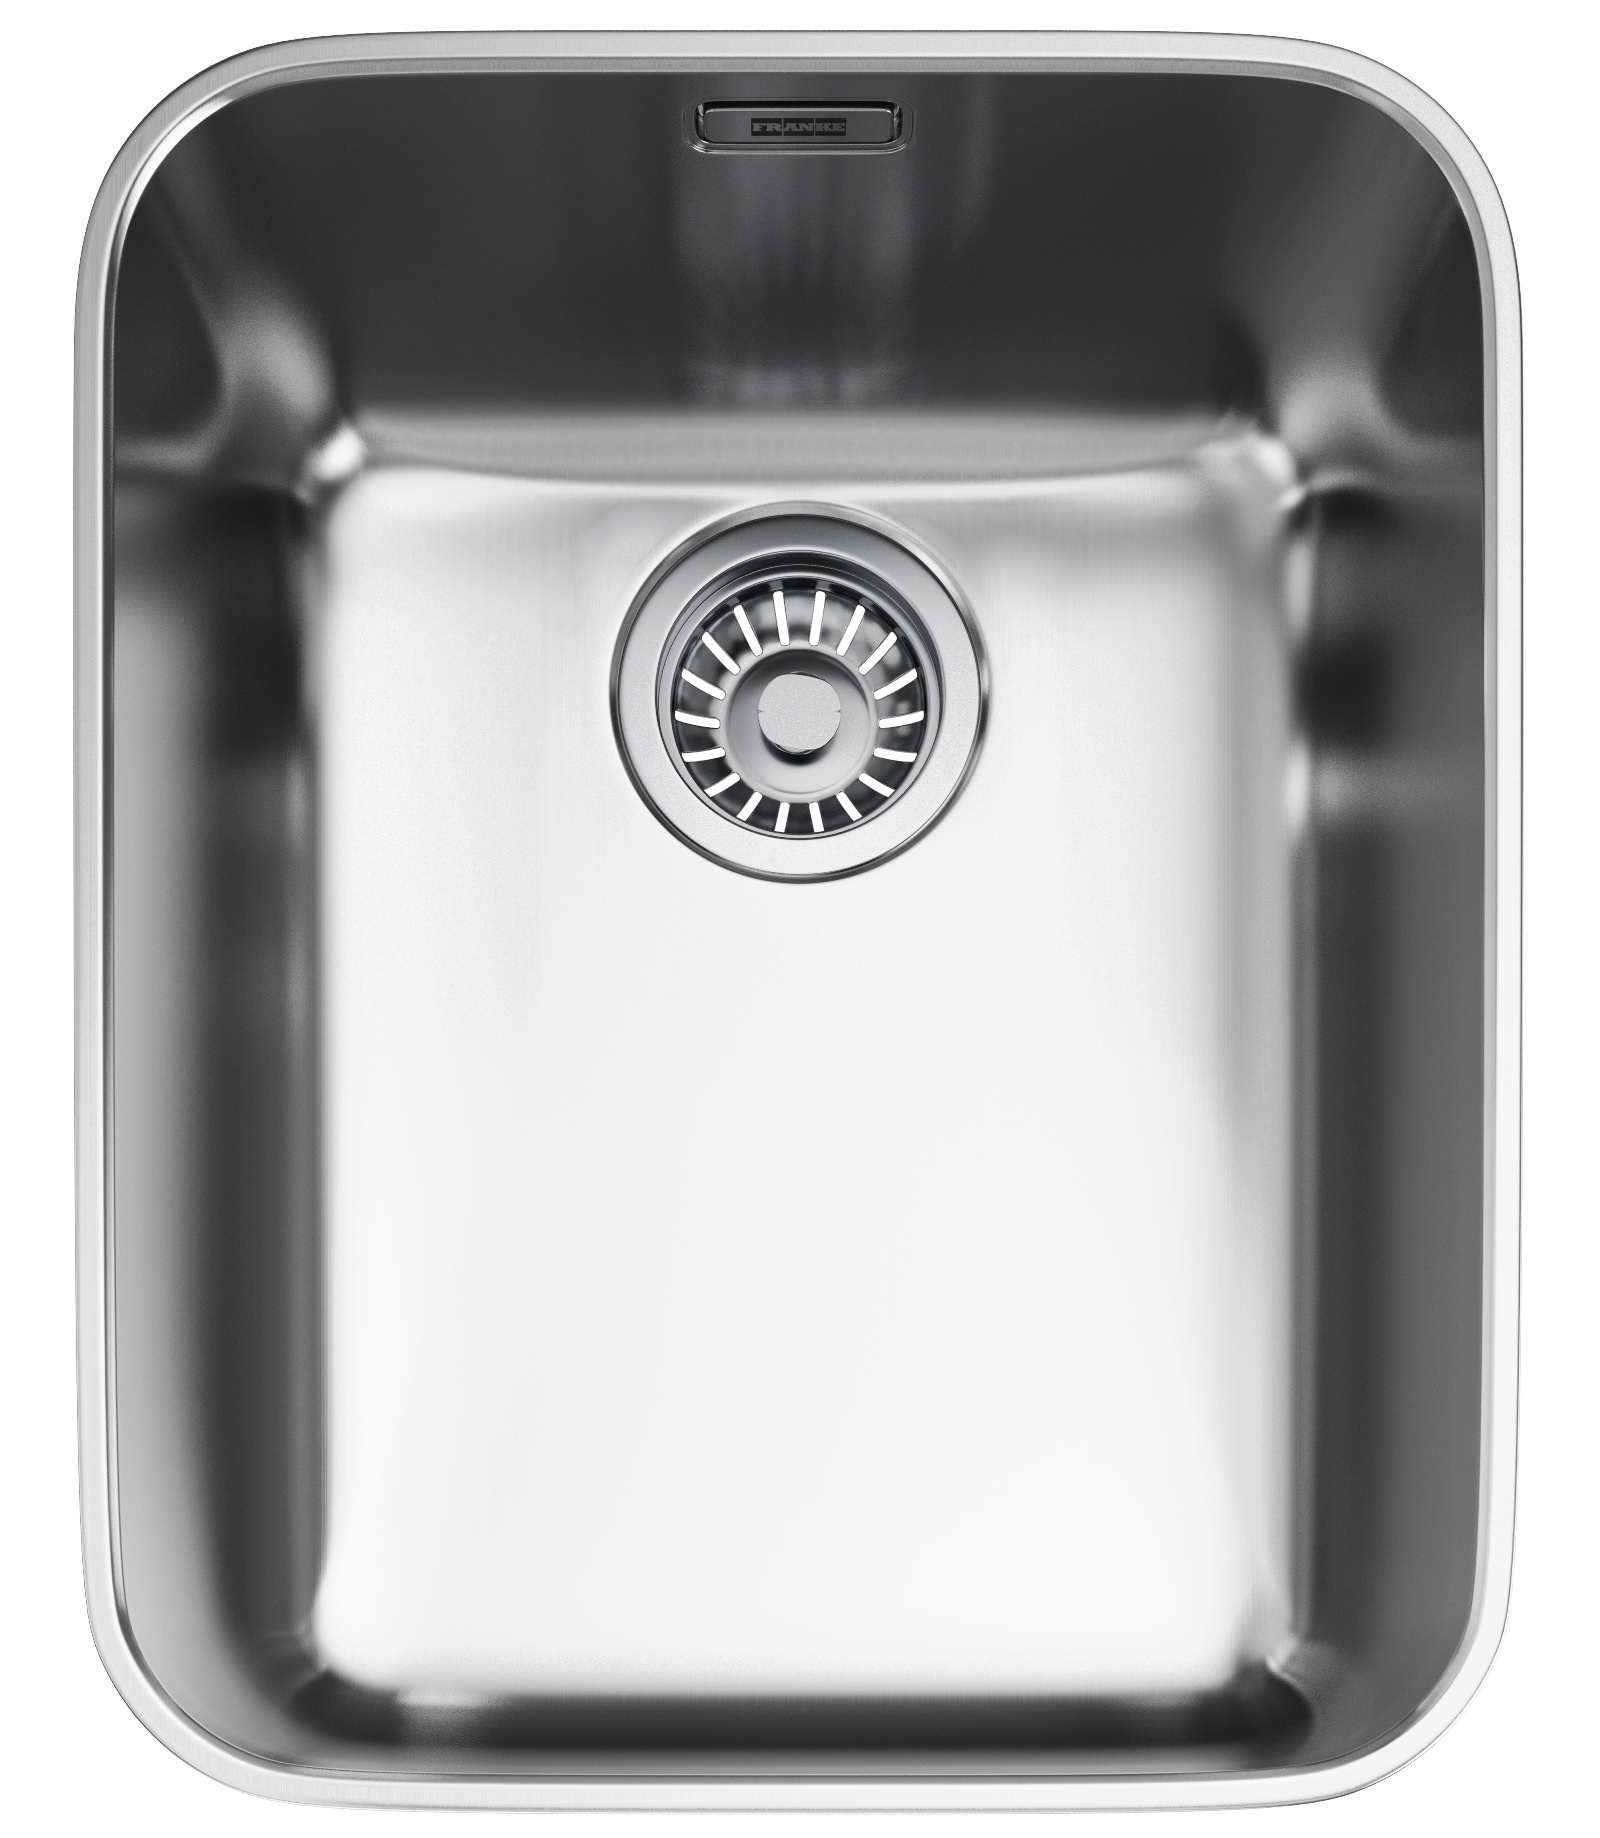 franke ariane arx 110 35 stainless steel undermount kitchen sink - Compact Kitchen Sink